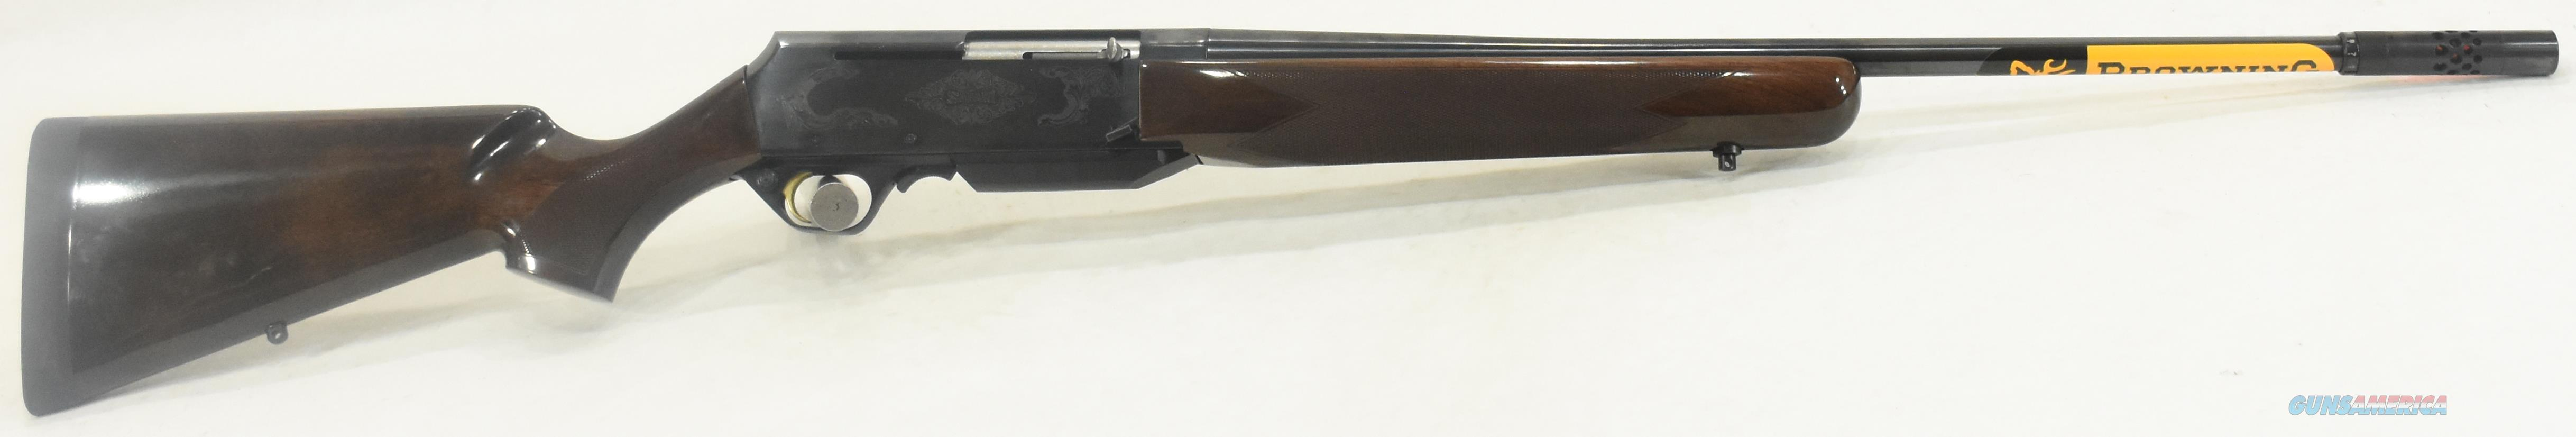 BAR Mark II Safari Wlnt BOSS 30-06Spfld  031001326  Guns > Rifles > Browning Rifles > Semi Auto > Hunting